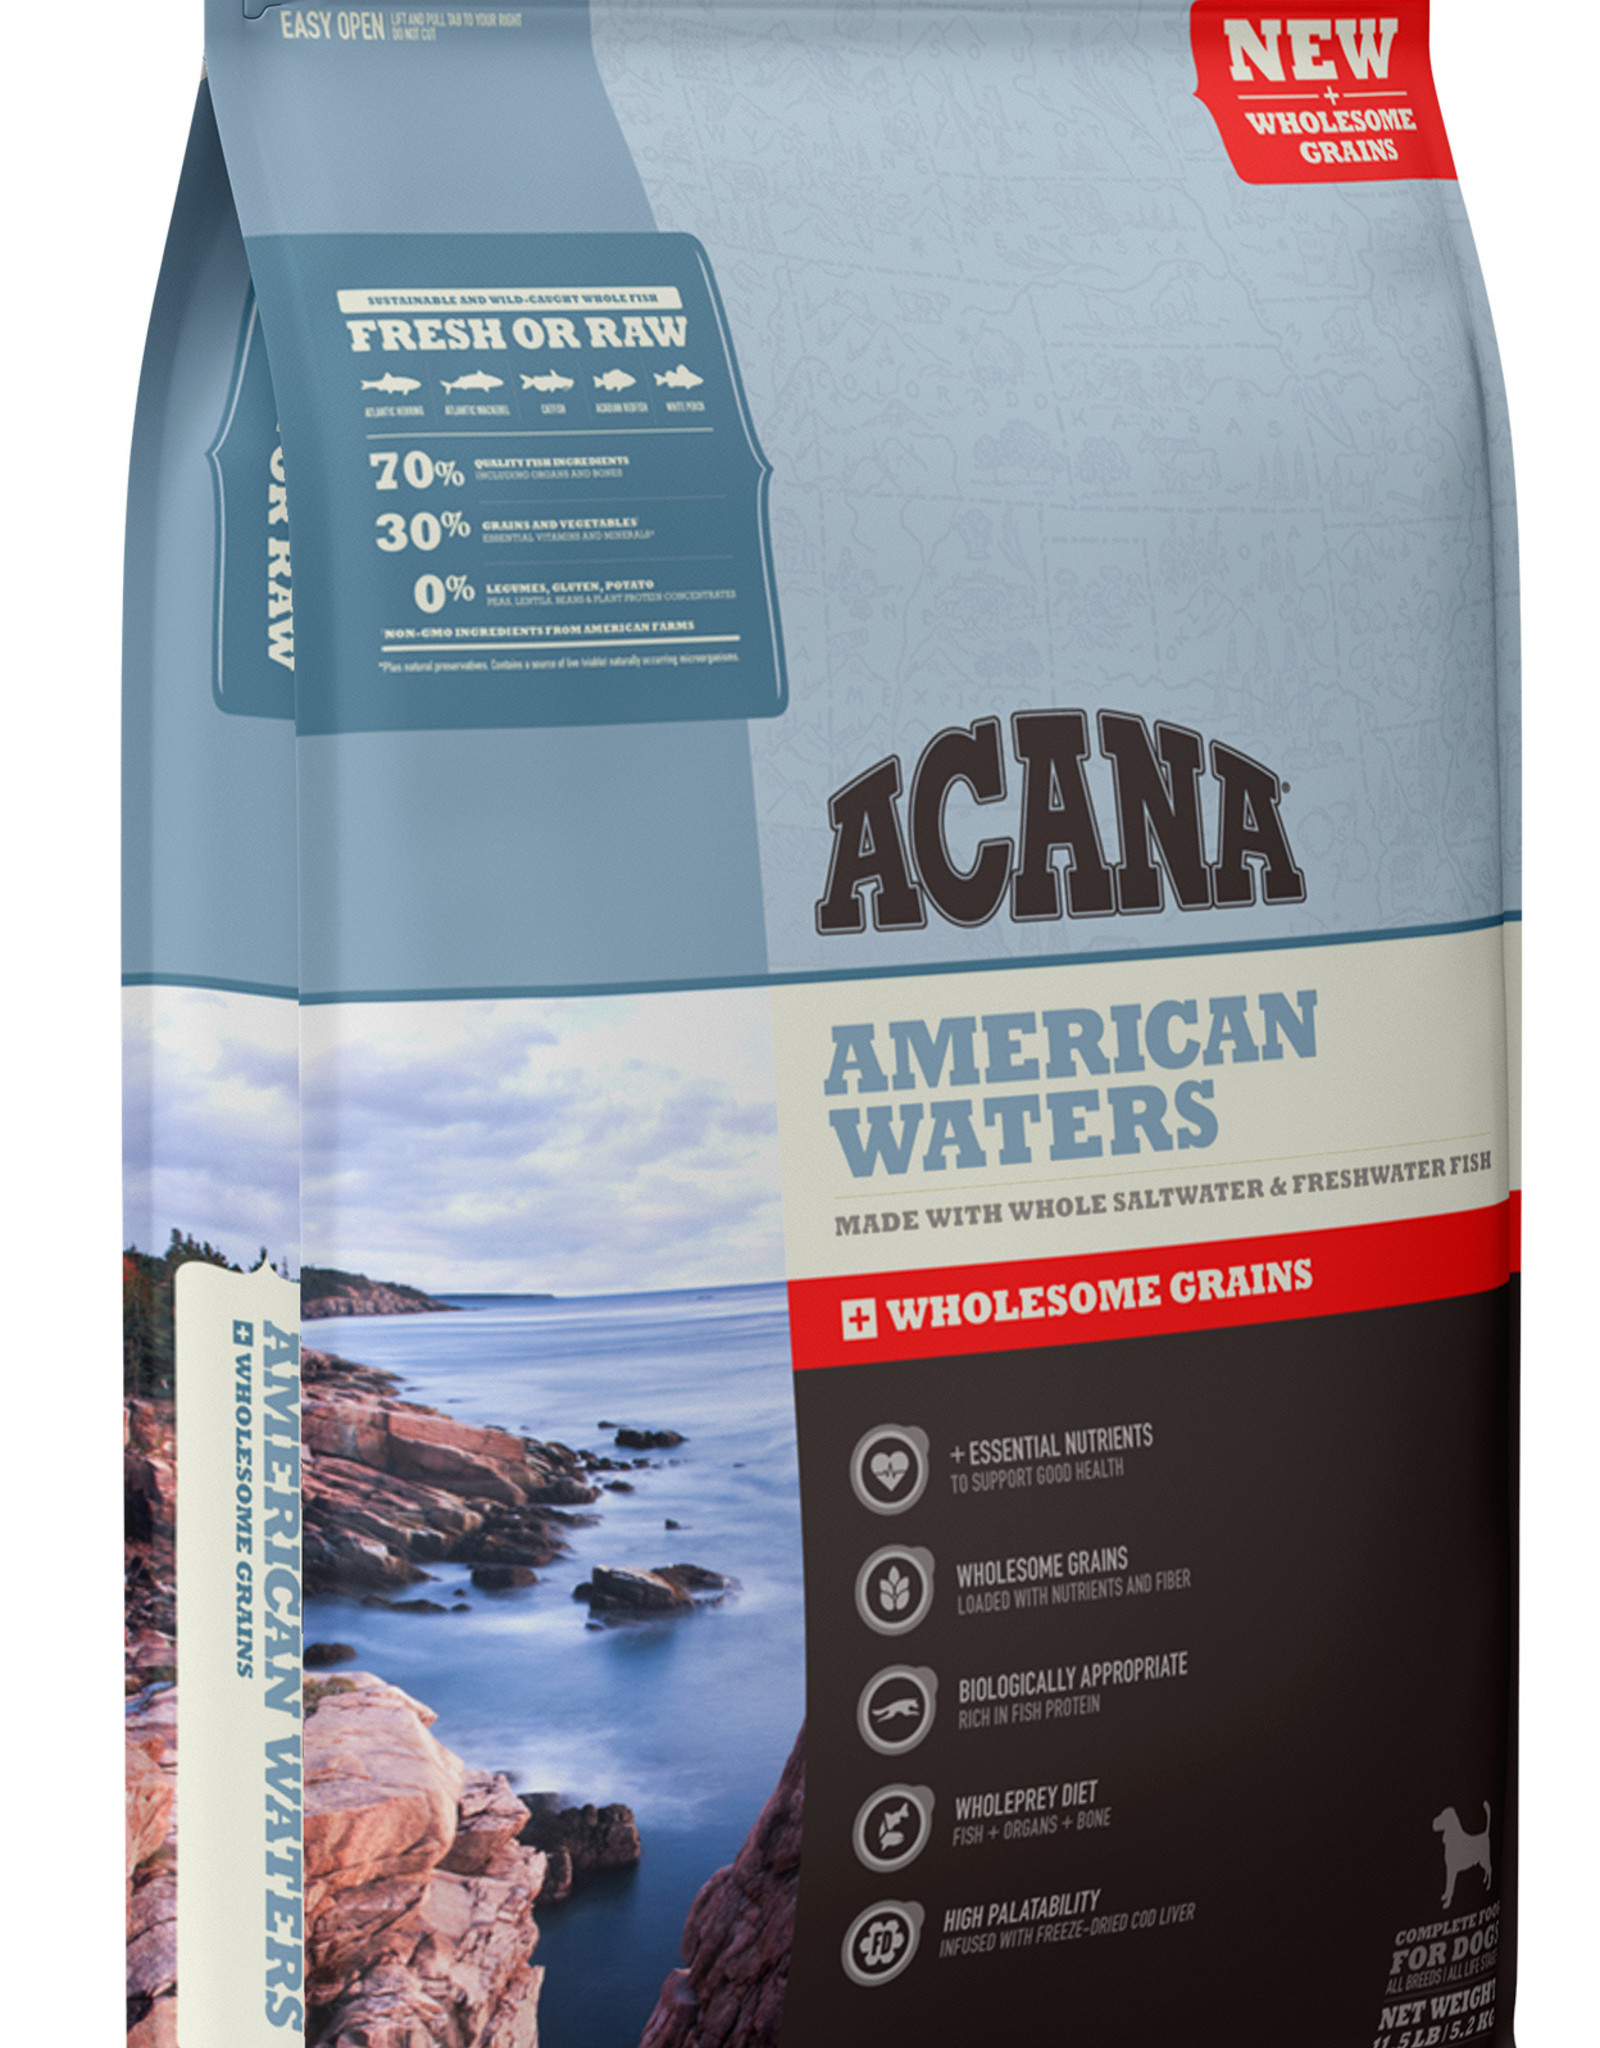 CHAMPION PET FOOD ACANA AMERICAN WATERS WHOLESOME GRAINS 22.5LBS